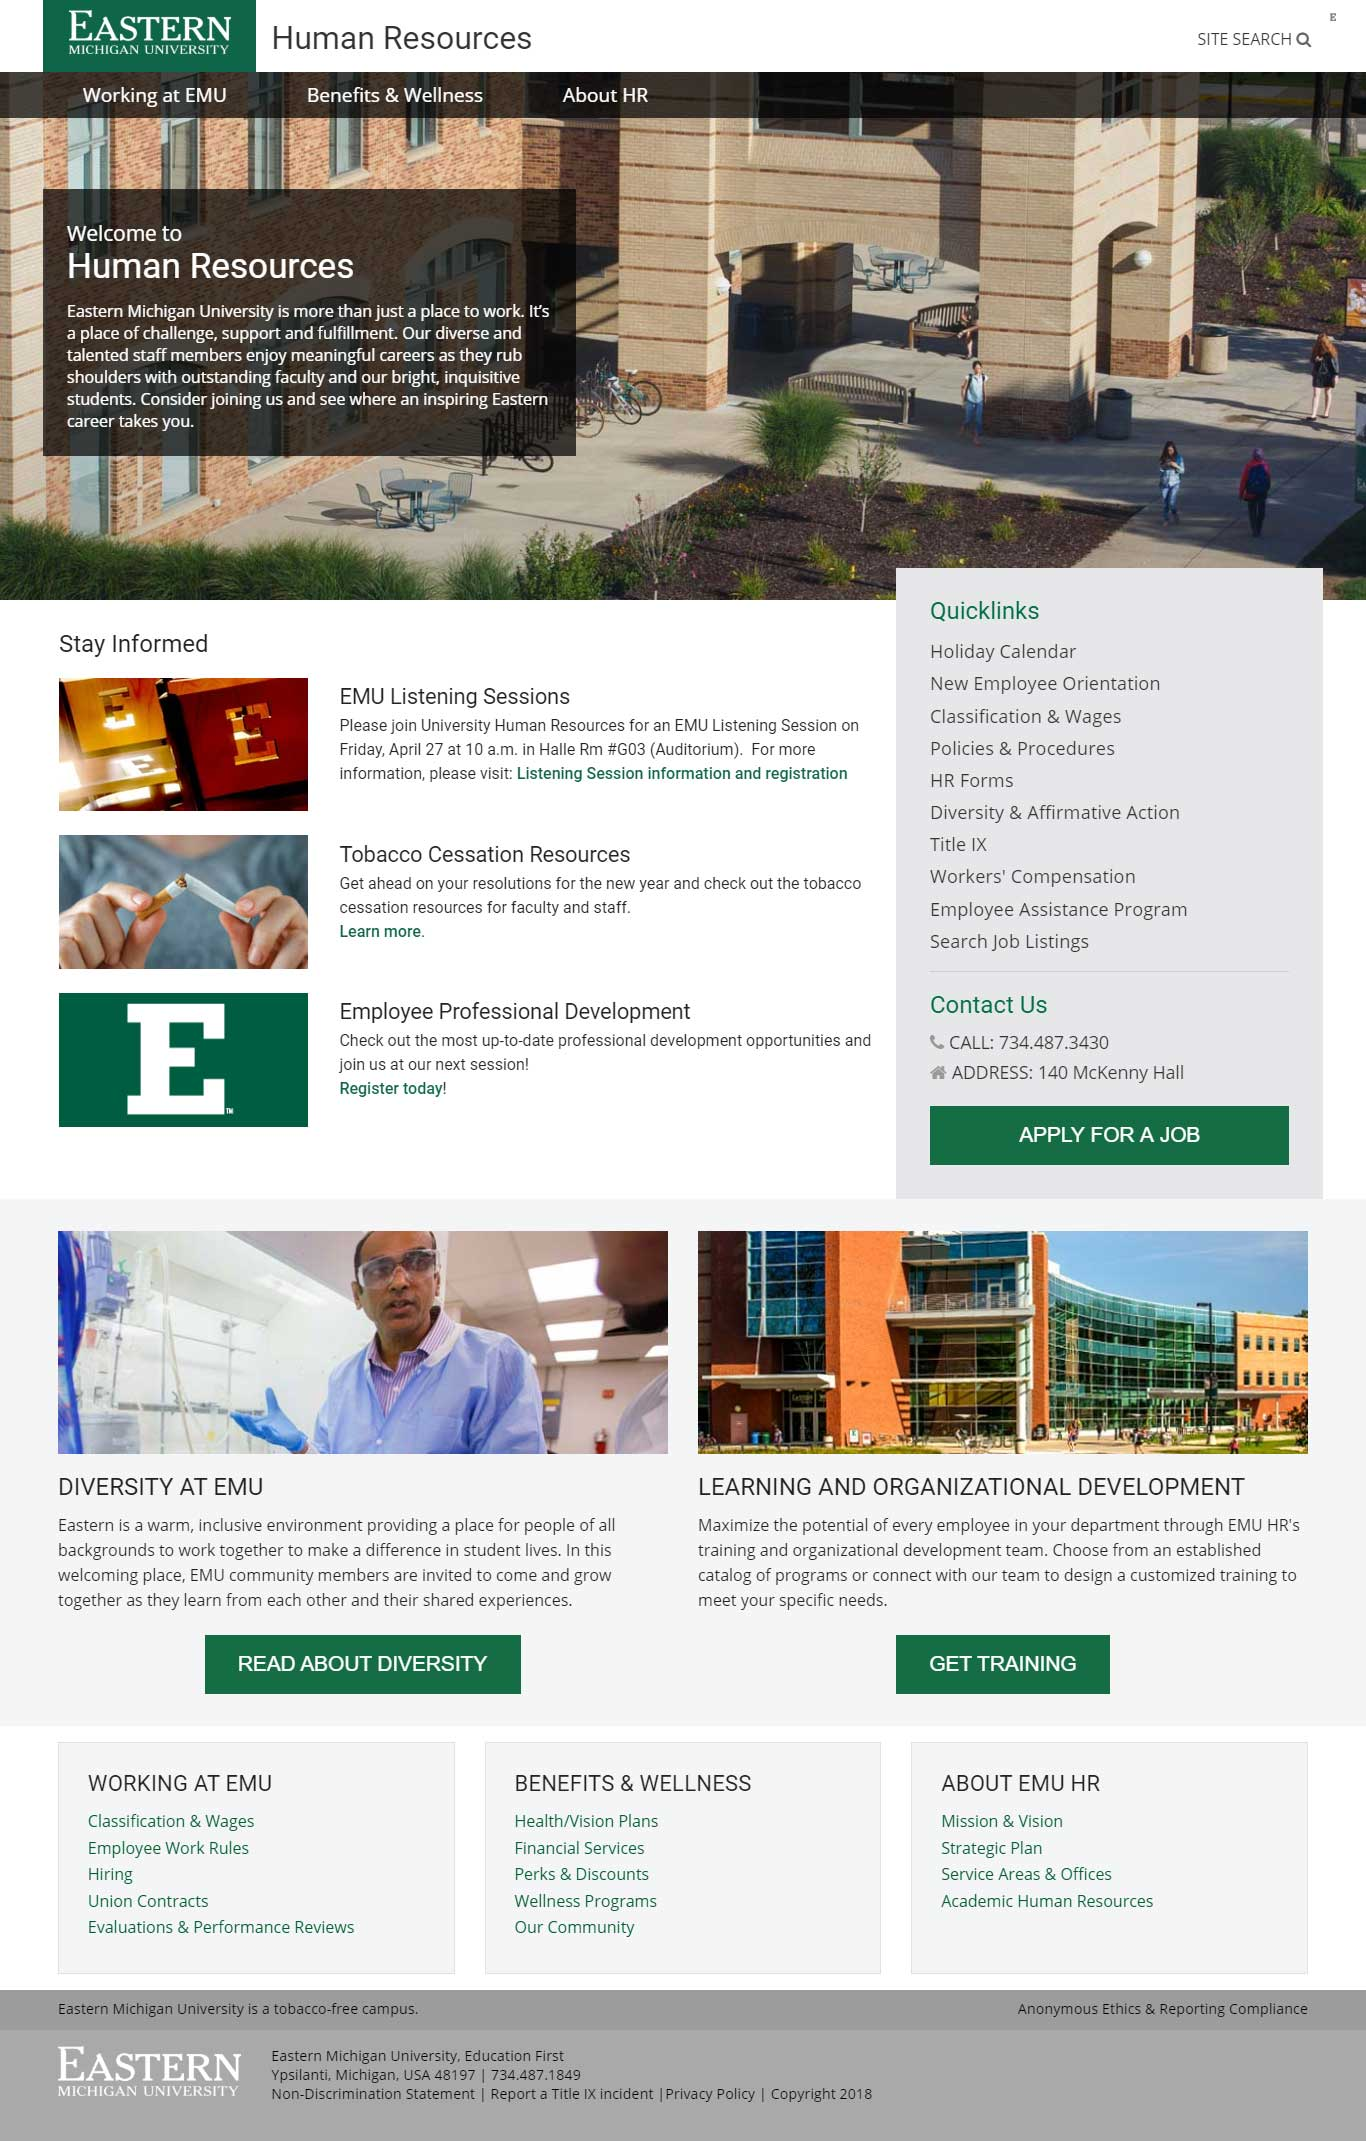 Eastern Michigan University Human Resources Website